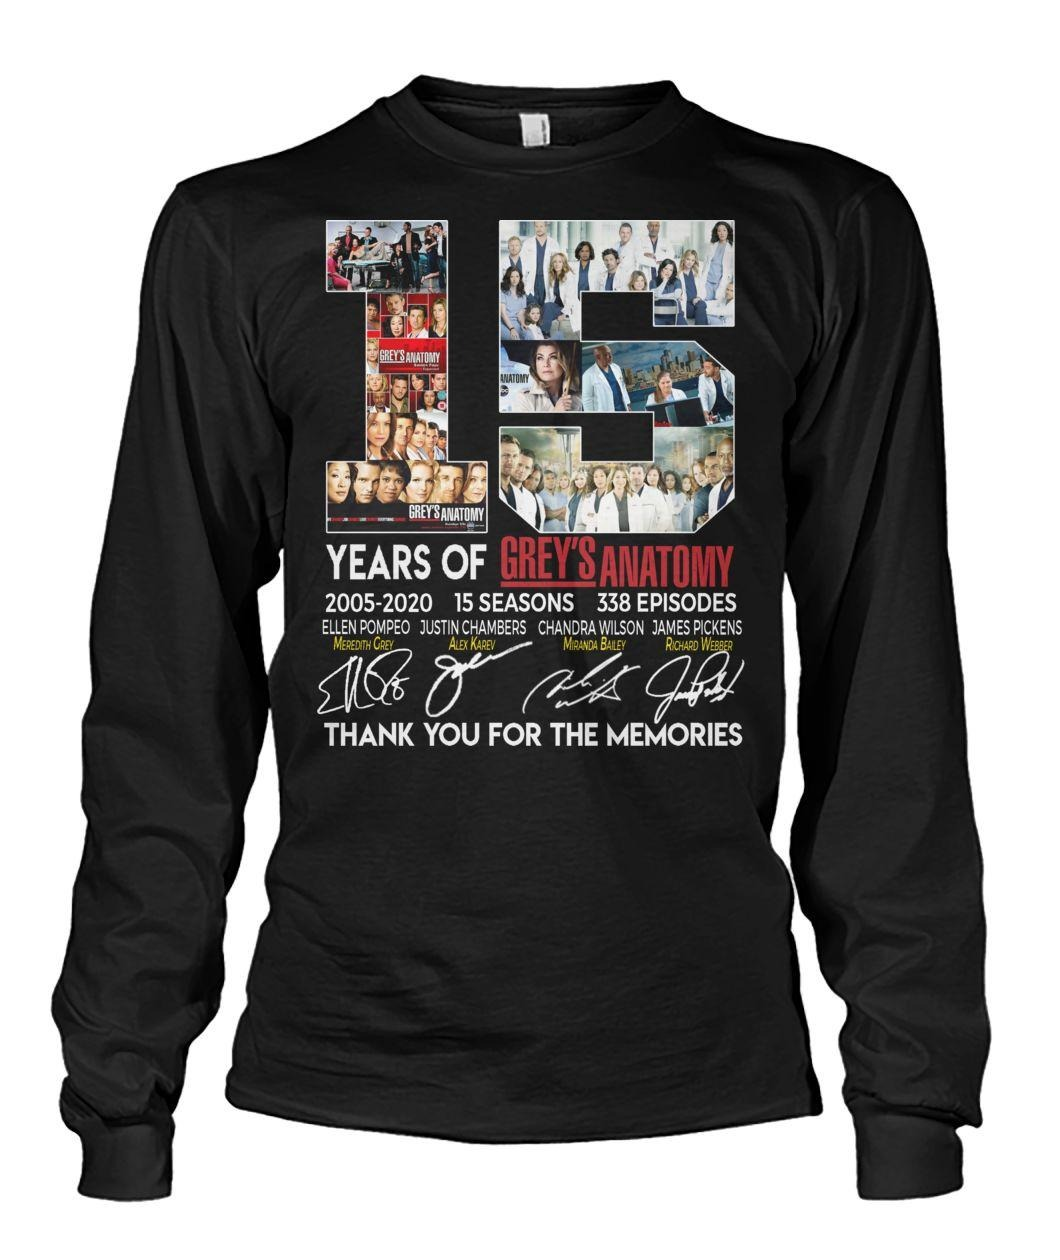 15 Years of Grey's Anatomy 2005-2020 15 seasons 338 episodes shirt